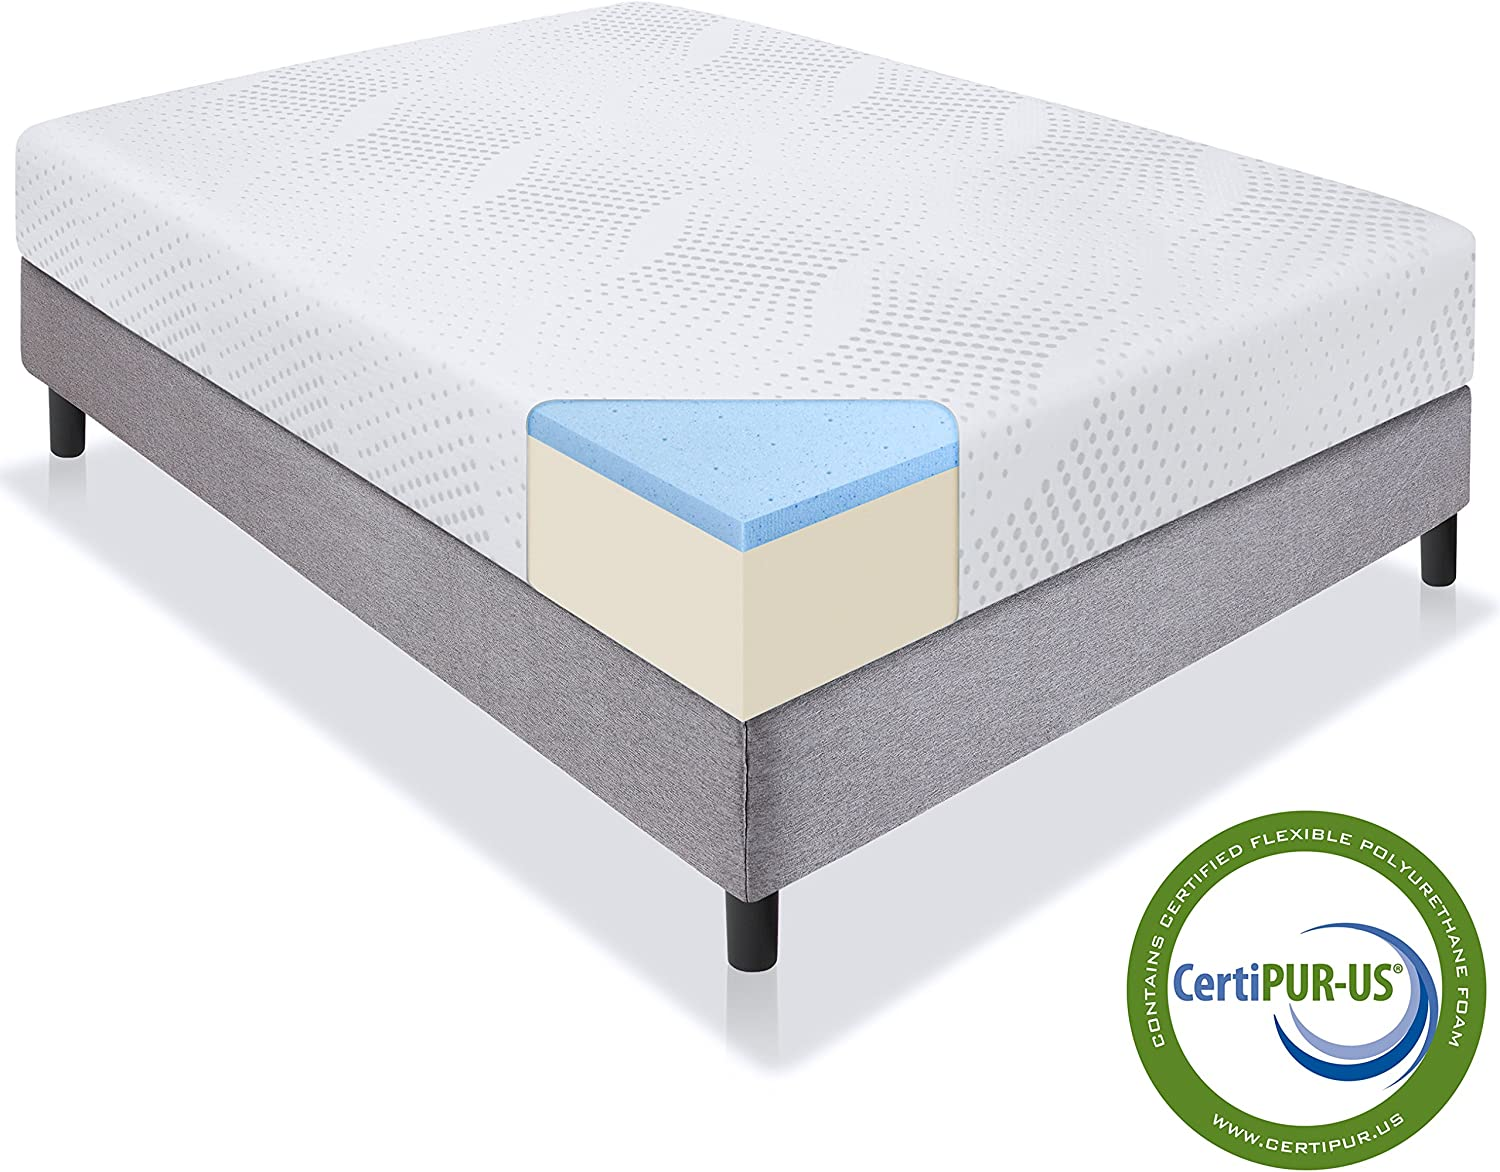 10 inch Latex Hybrid Coil Spring Mattress Cooling Bed in a Box-Pocket Innerspring Mattress CertiPUR-US 20Years Warranty Full Firm But Comfortable Full